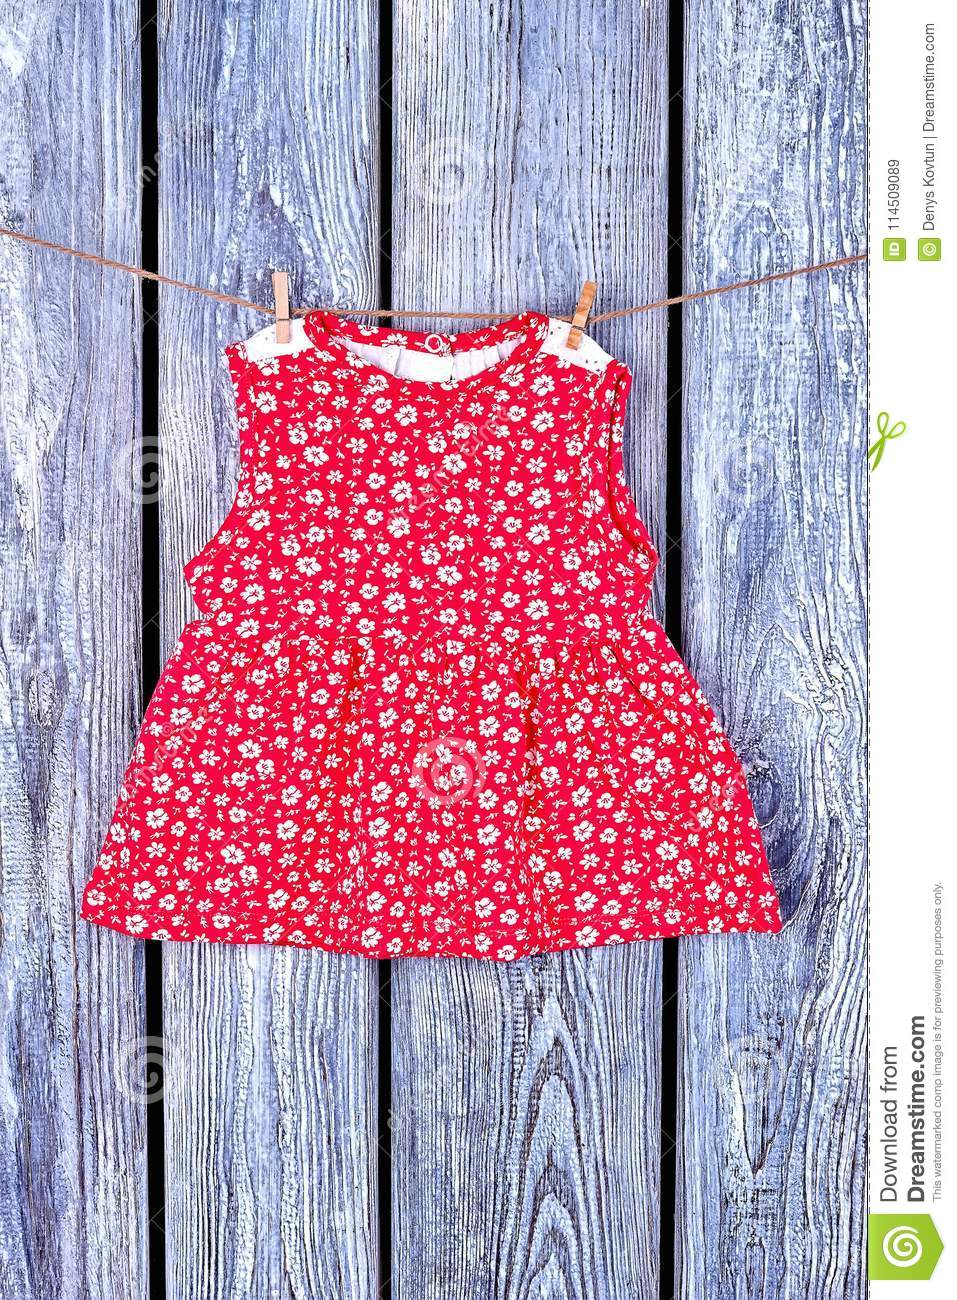 4bd1a2eb5 Newborn Girl Cute Dress On Rope. Stock Image - Image of design ...